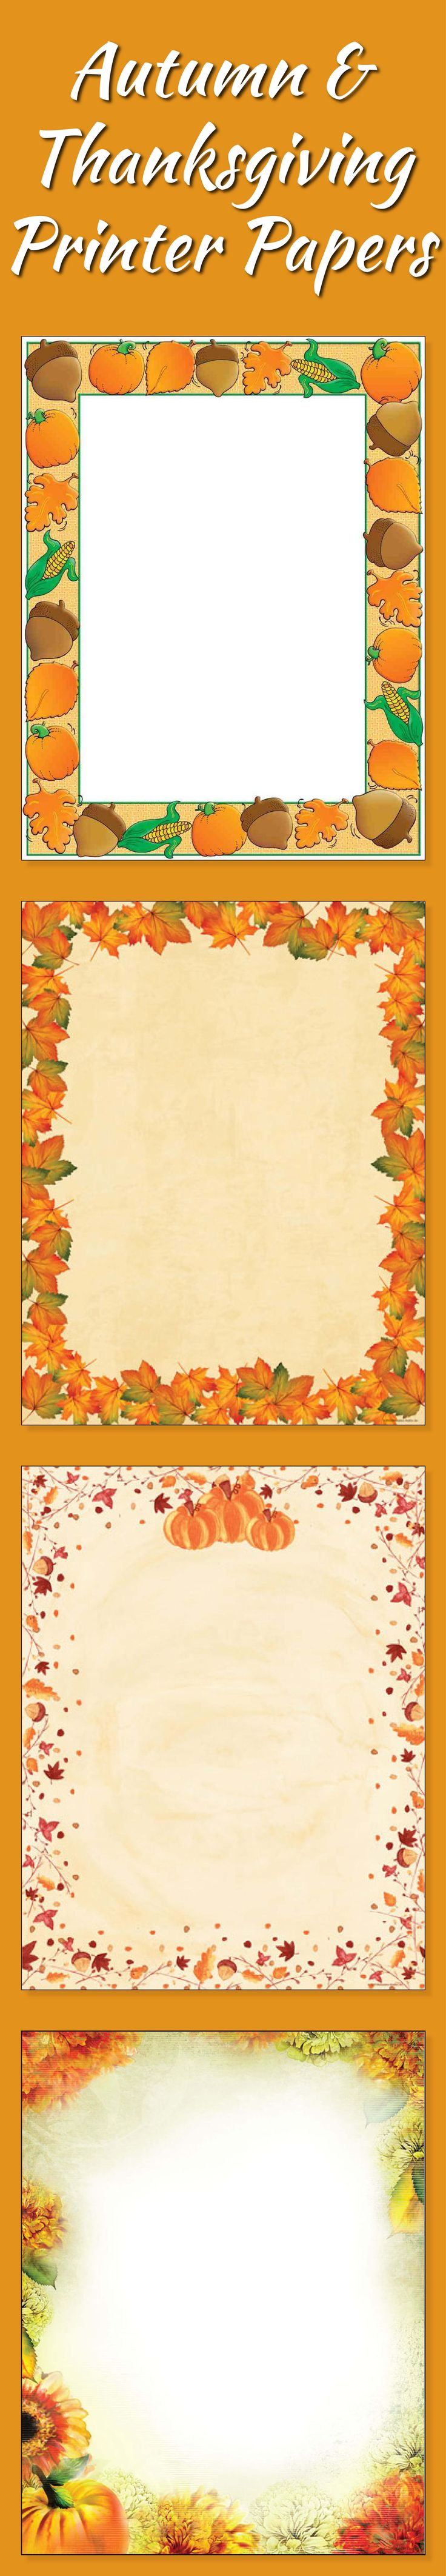 18 best images about thanksgiving paper on pinterest for Themed printer paper